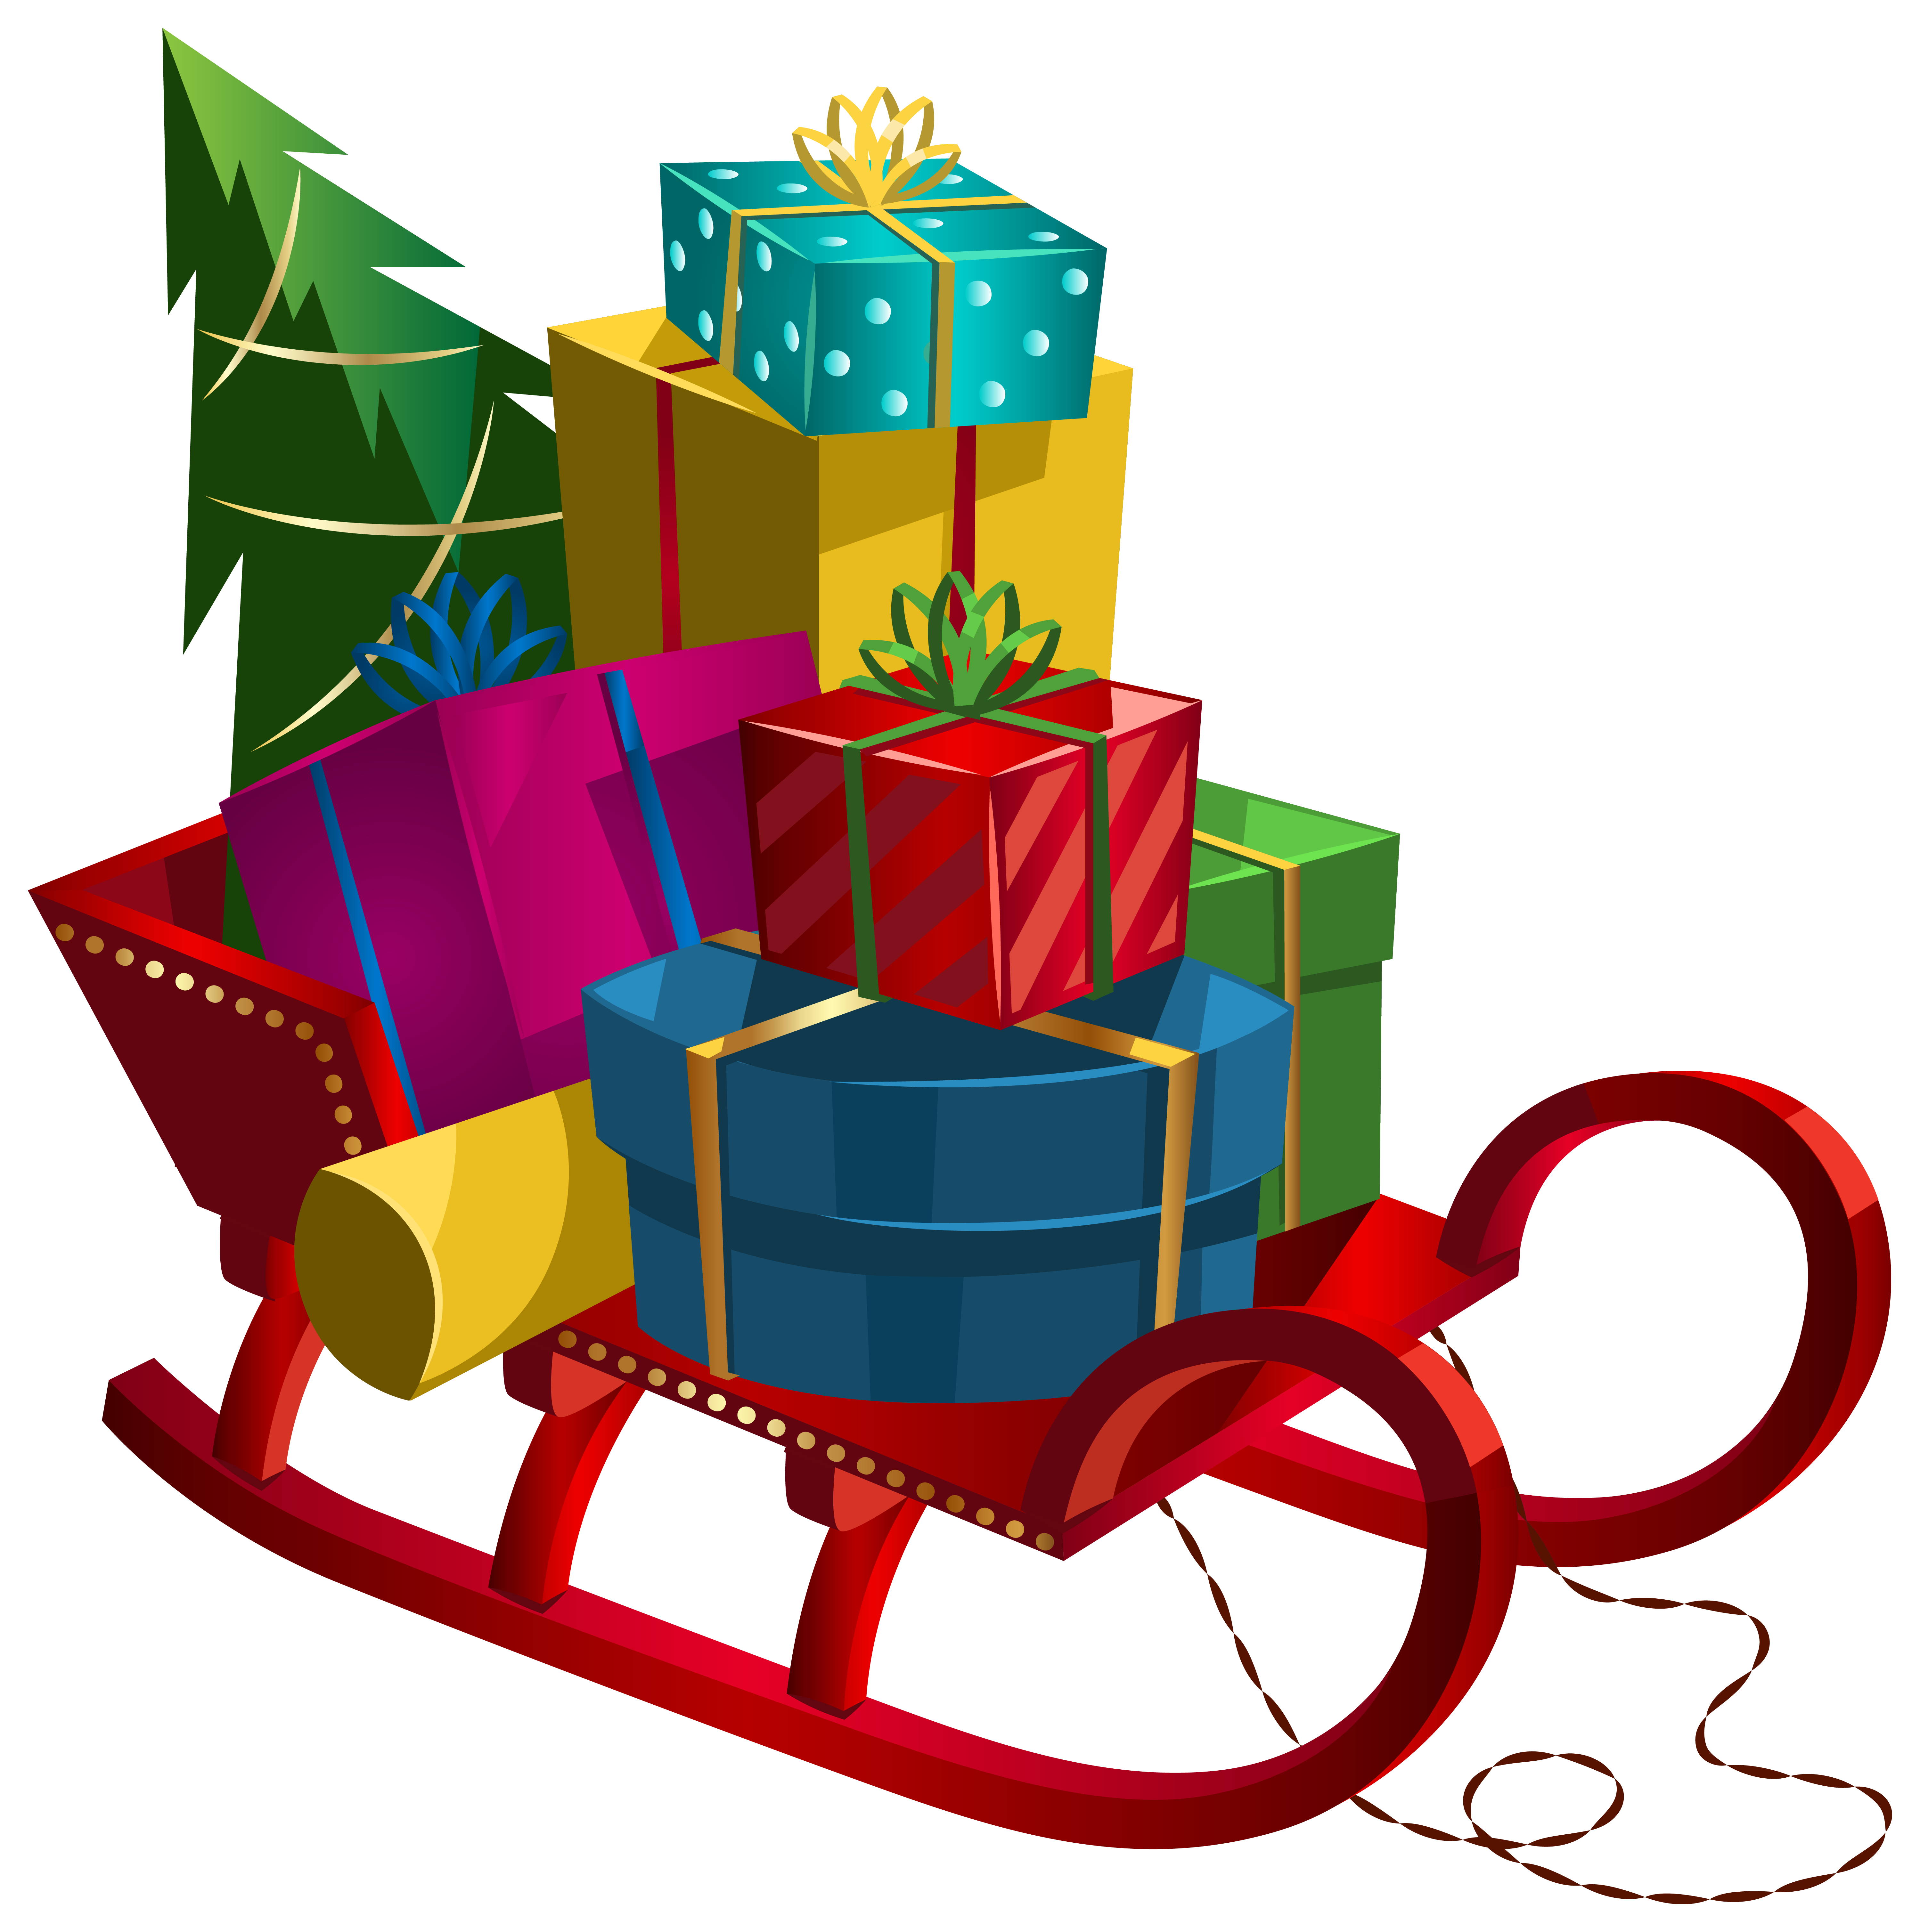 Sleigh clipart gift  full Art Gifts size